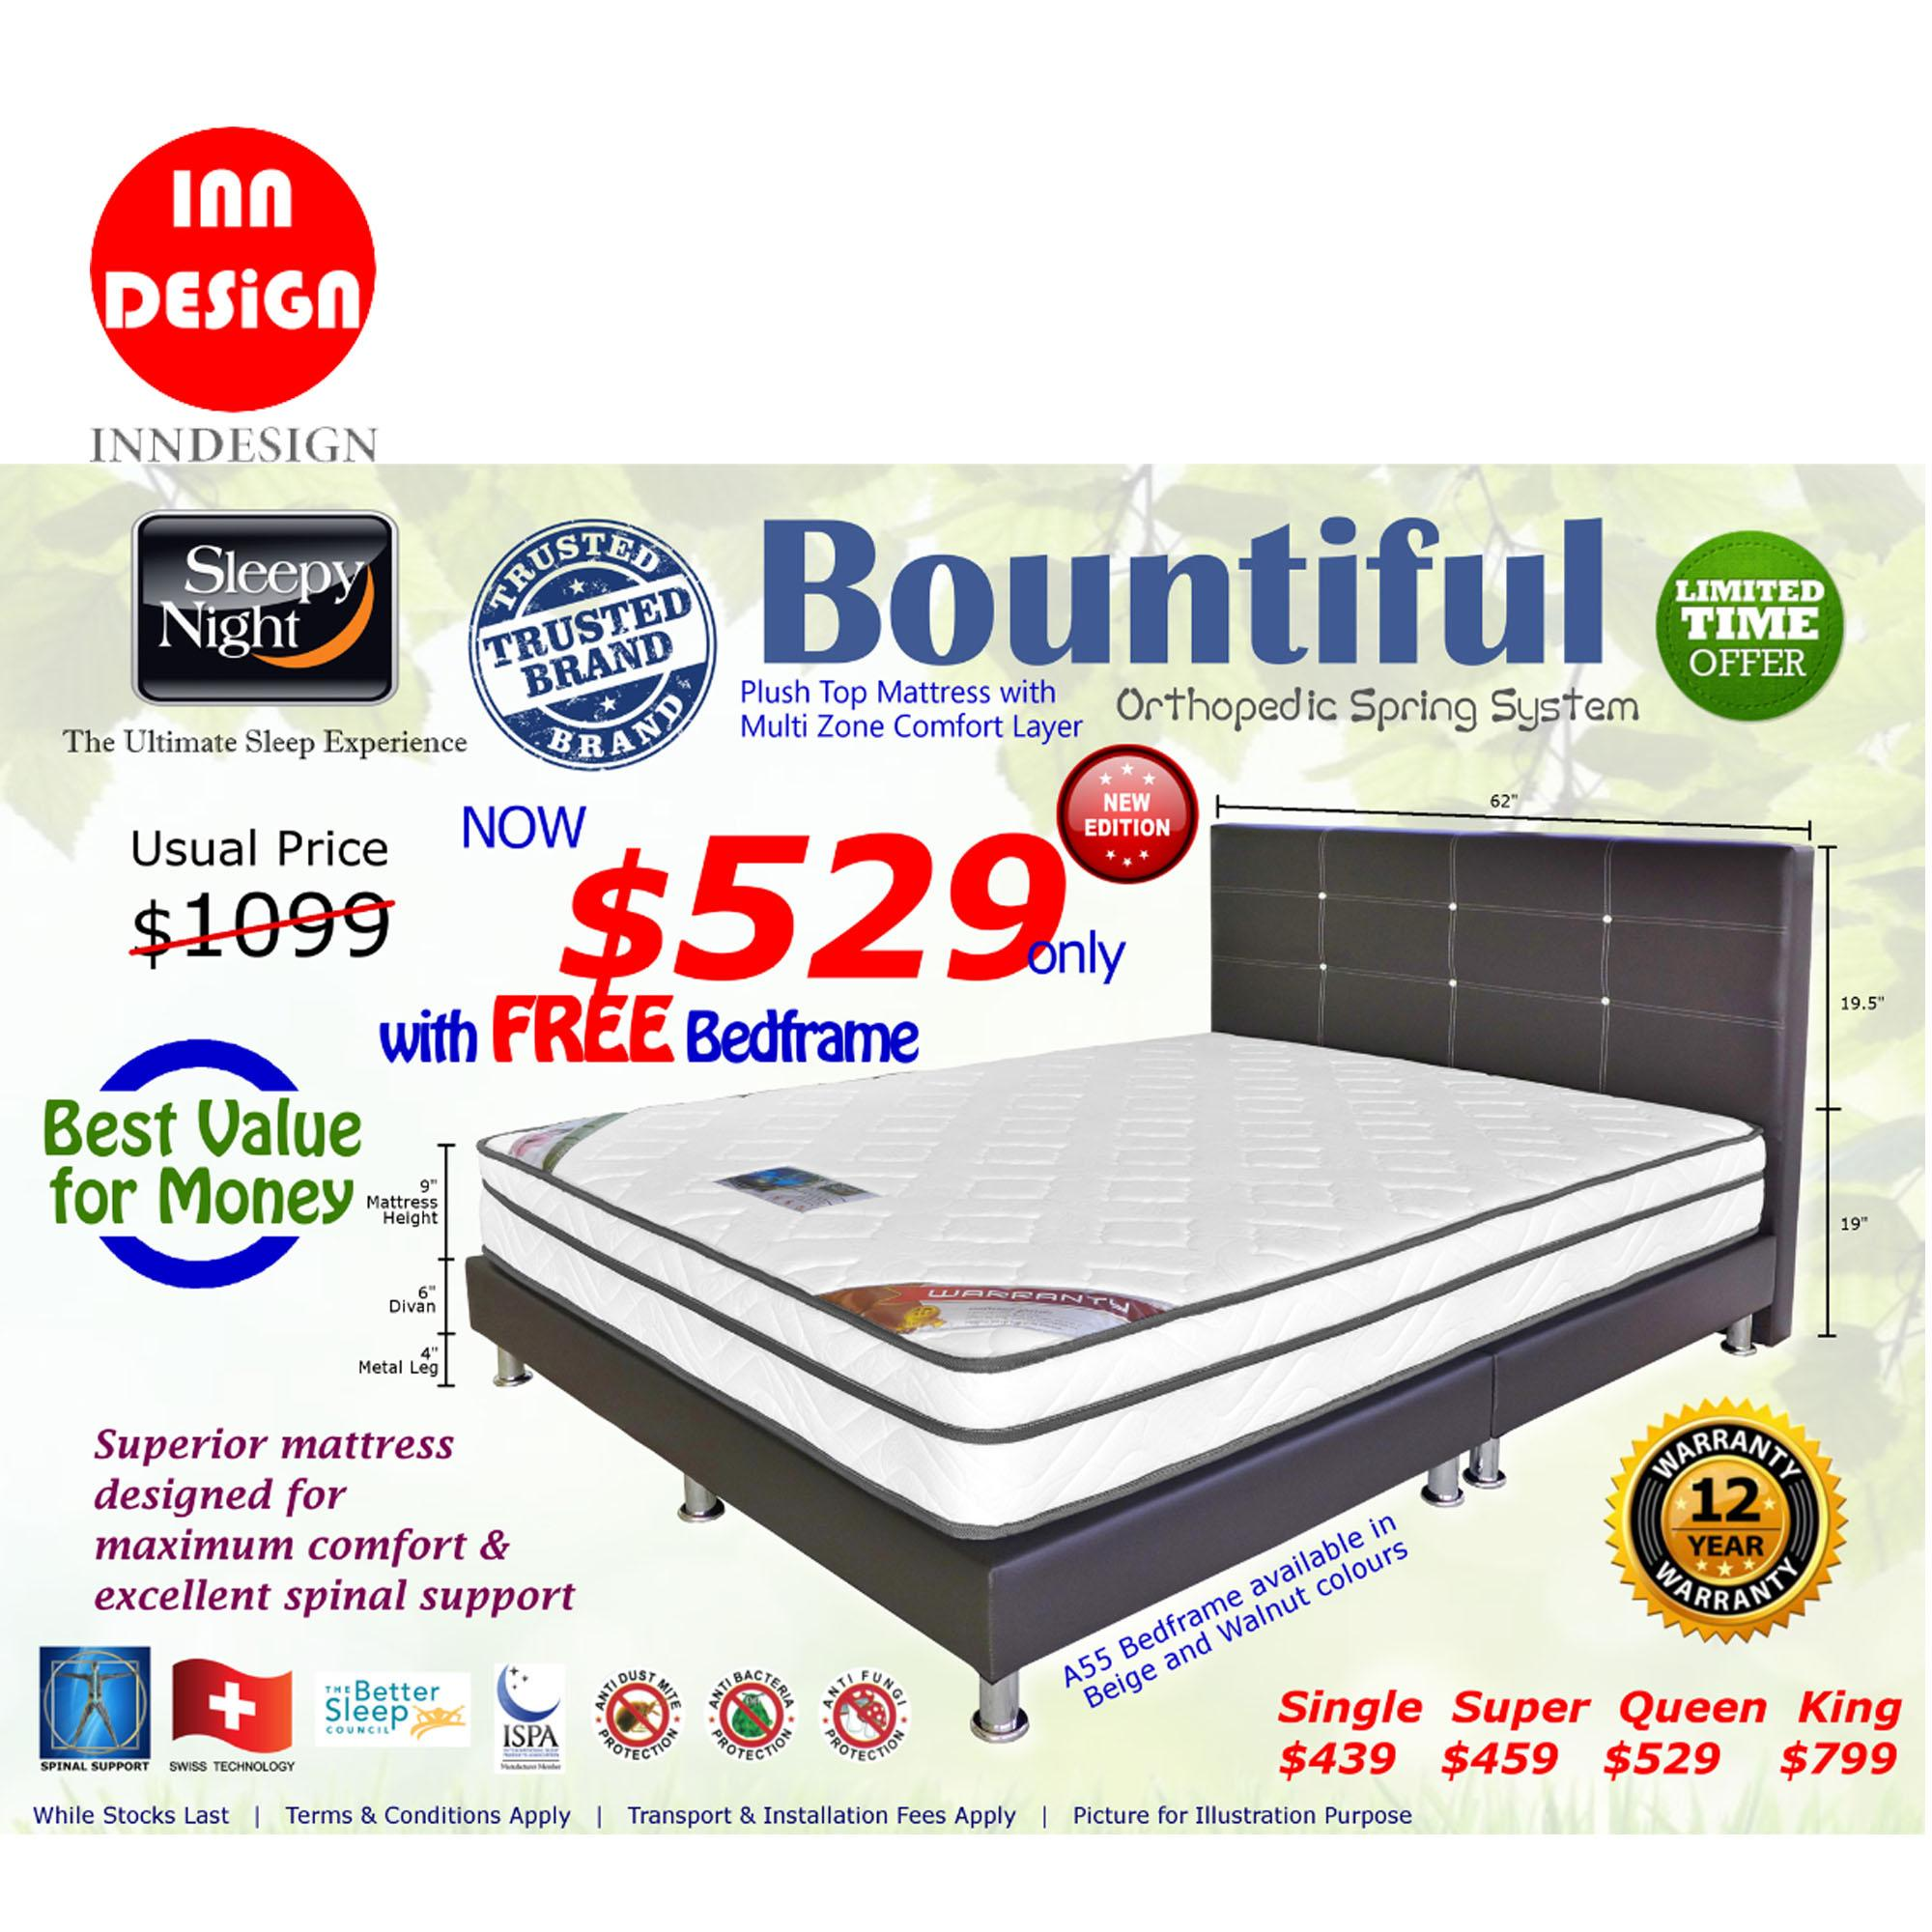 INNDESIGN Sleepy Night Bountiful Set - 9 Inch Mattress + Free BedFrame(12 Years Warranty)